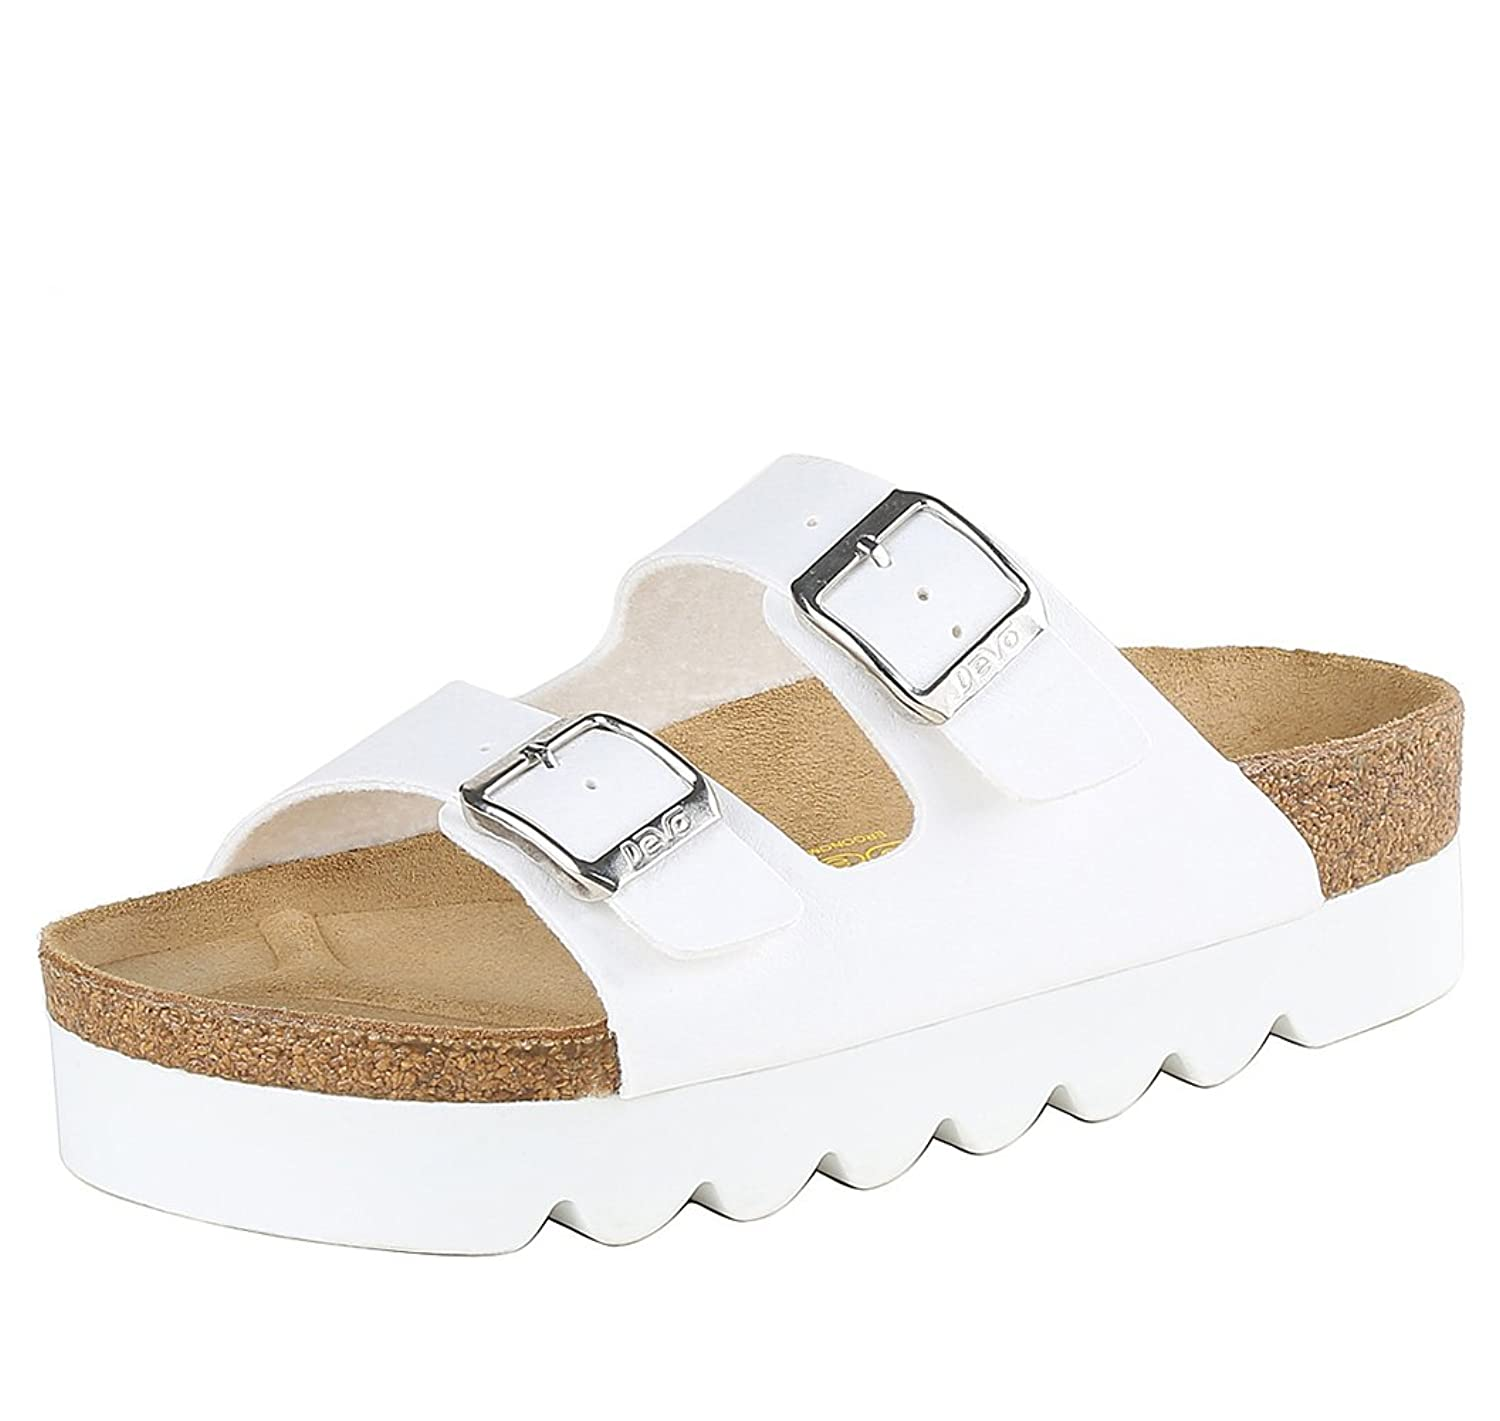 Fashiondiary Women's Casual Flange Footwear